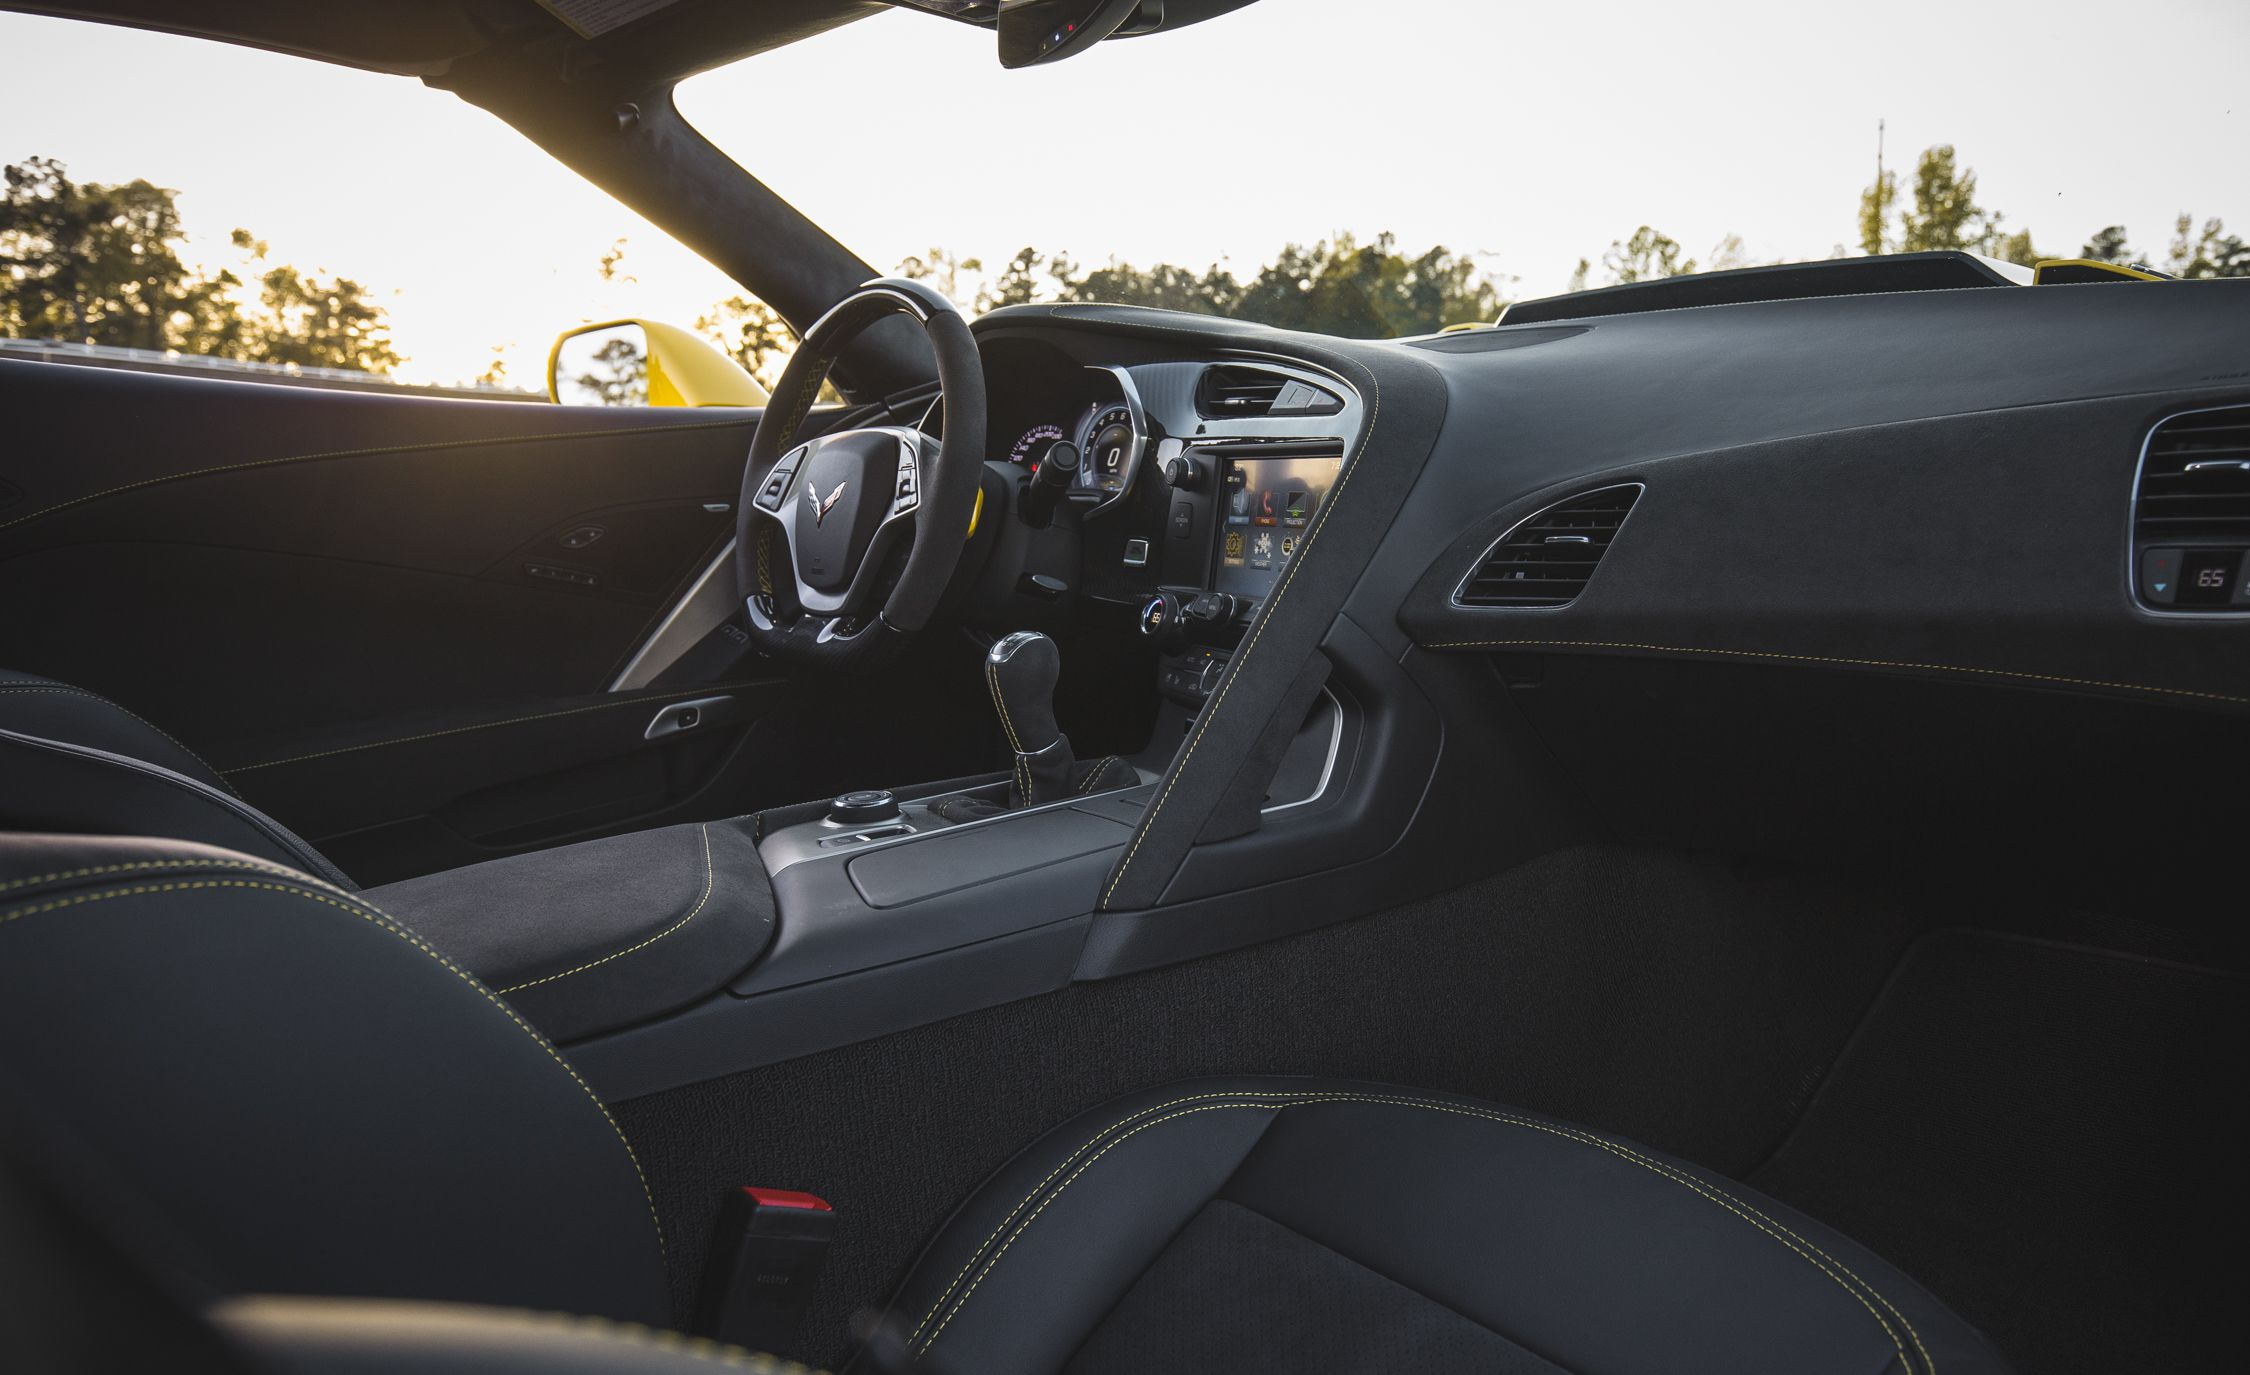 2019 Chevrolet Corvette Zr1 Interior Cockpit Wallpapers 53